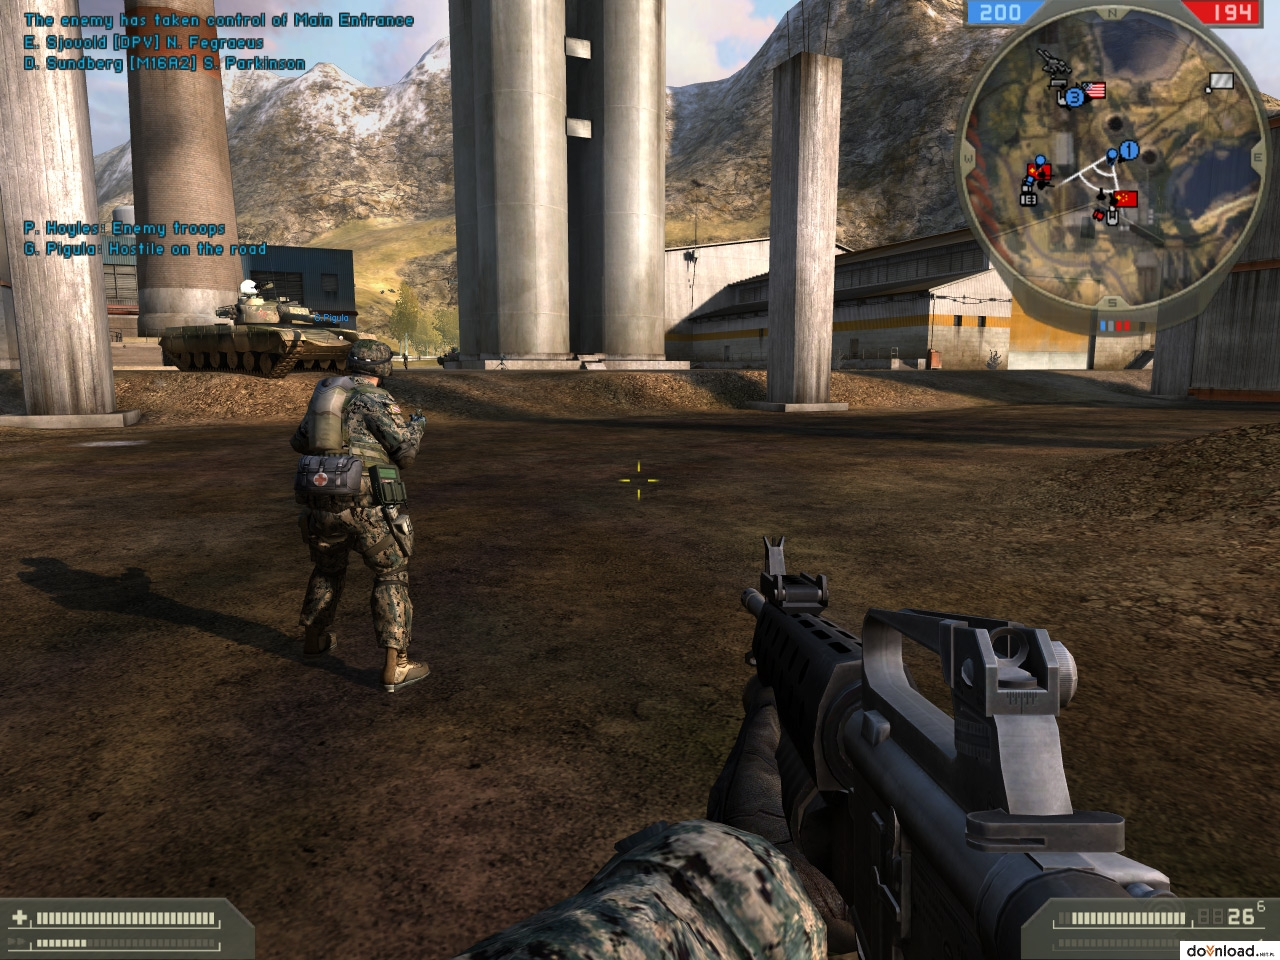 battlefield game free download full version for pc